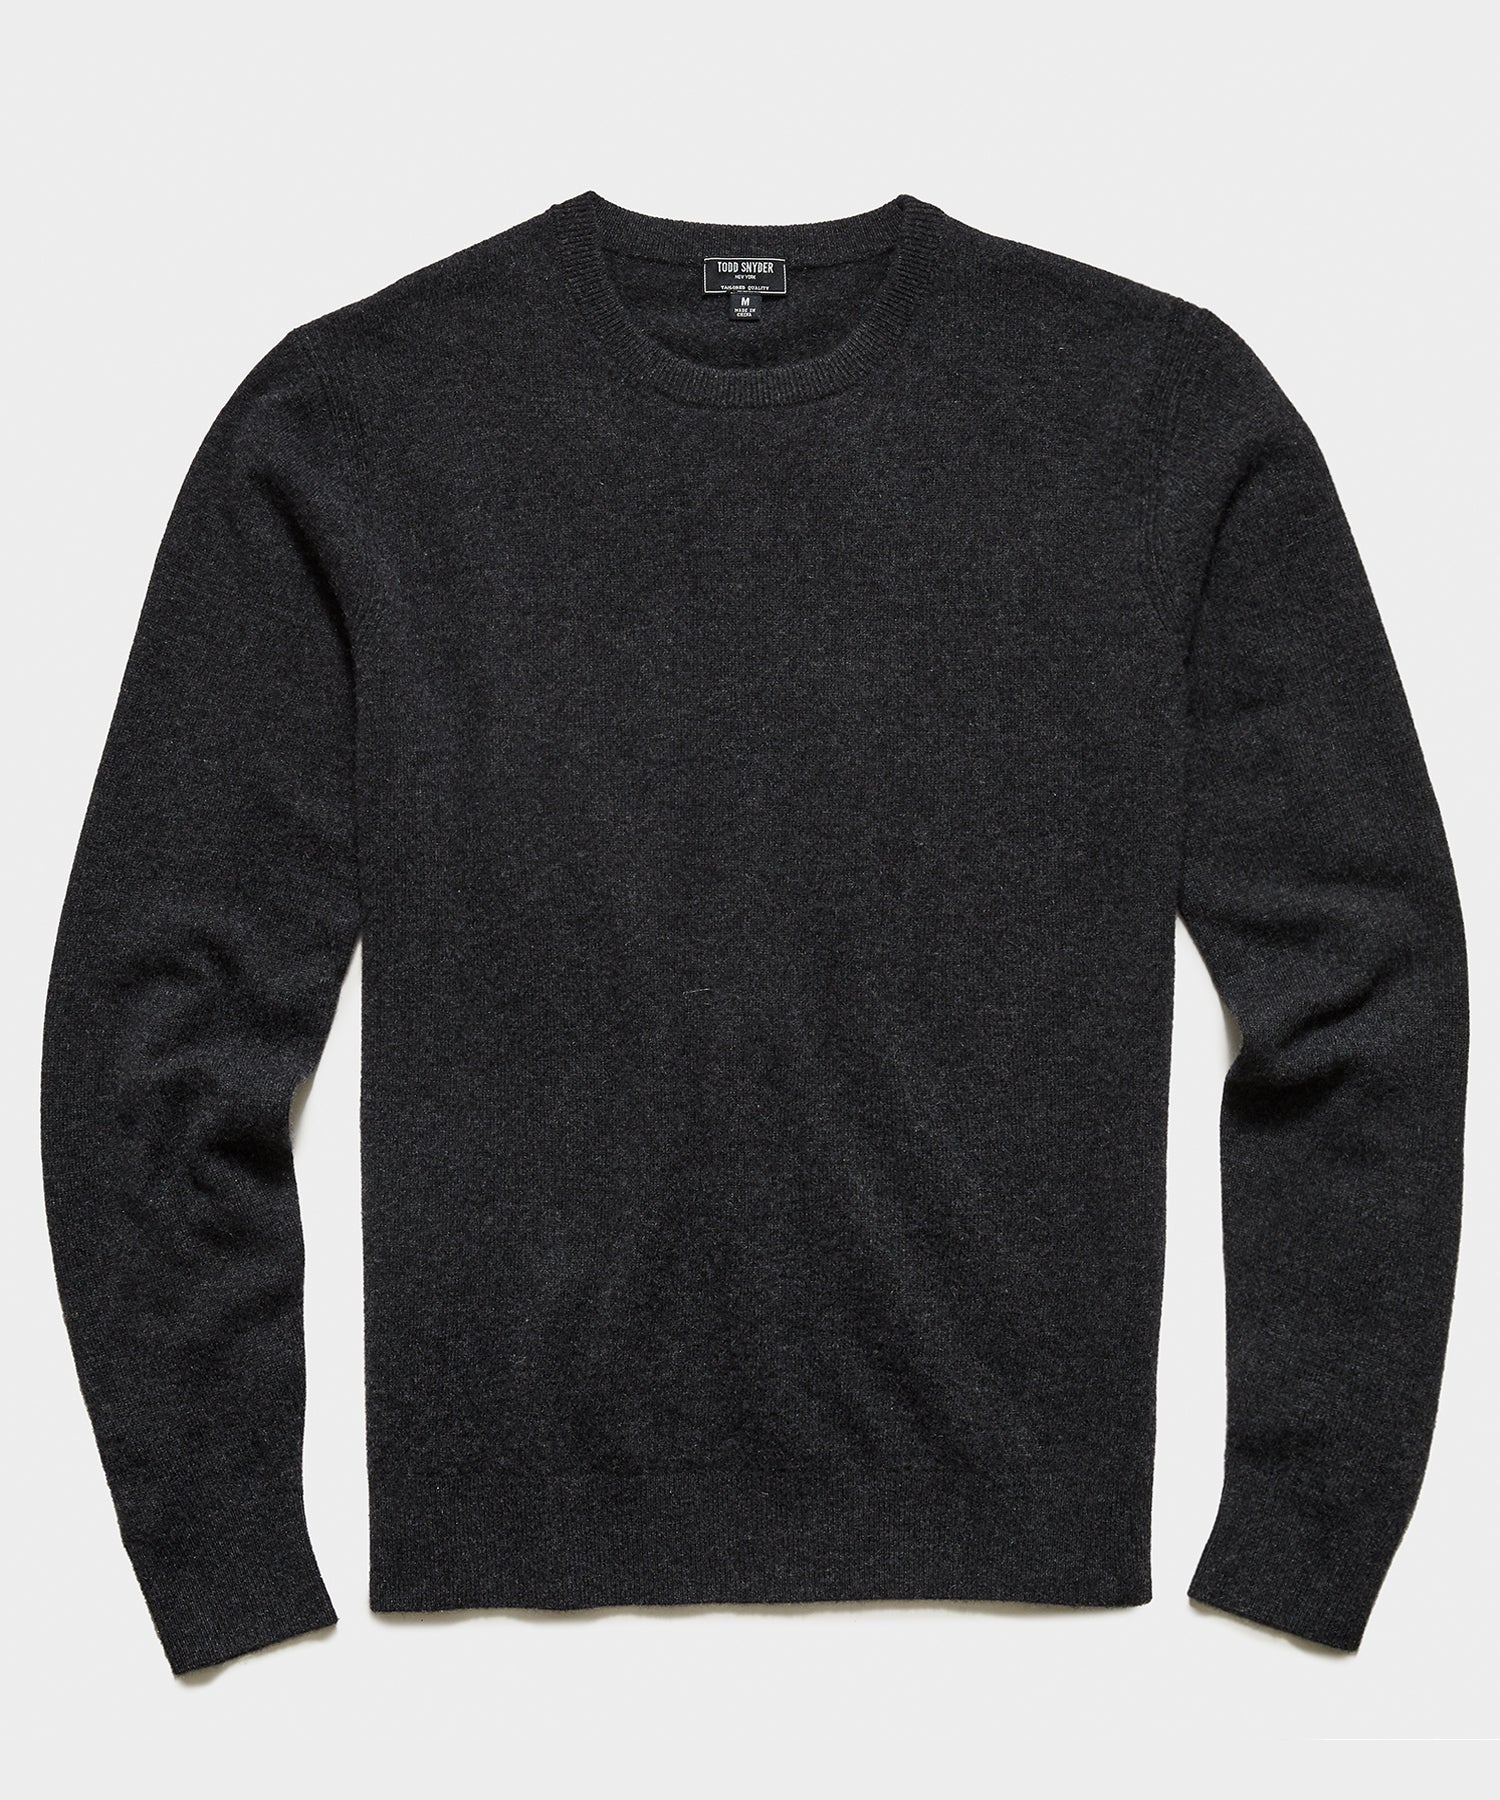 Cashmere Crewneck in Charcoal